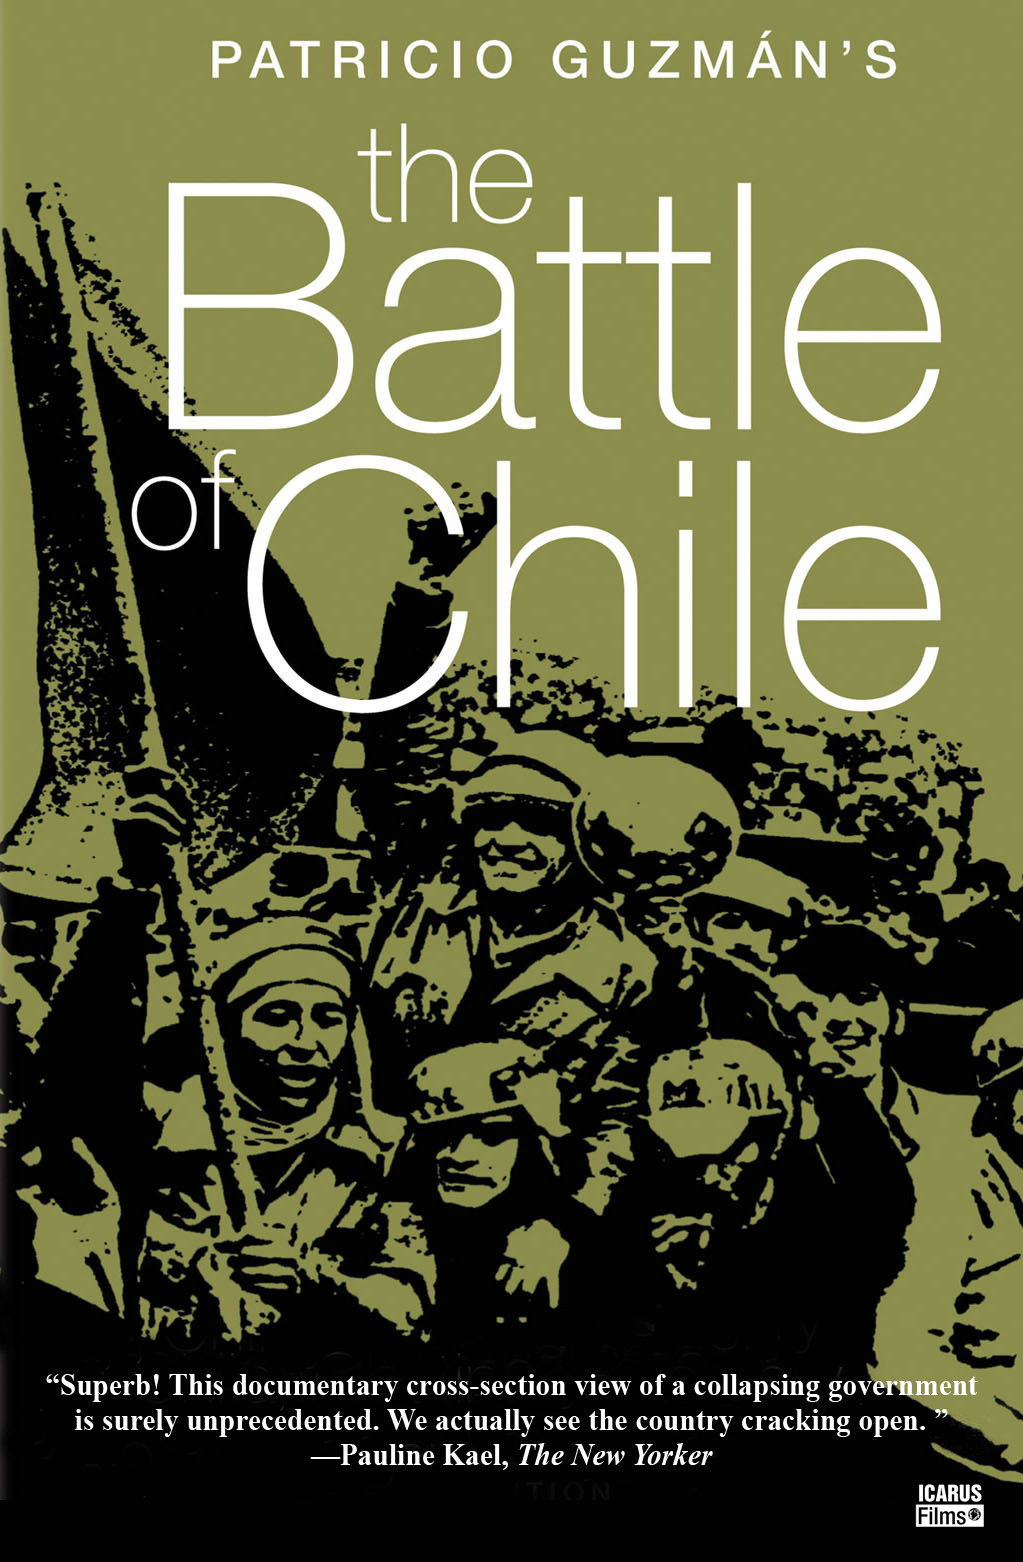 The Battle of Chile: Part I kapak